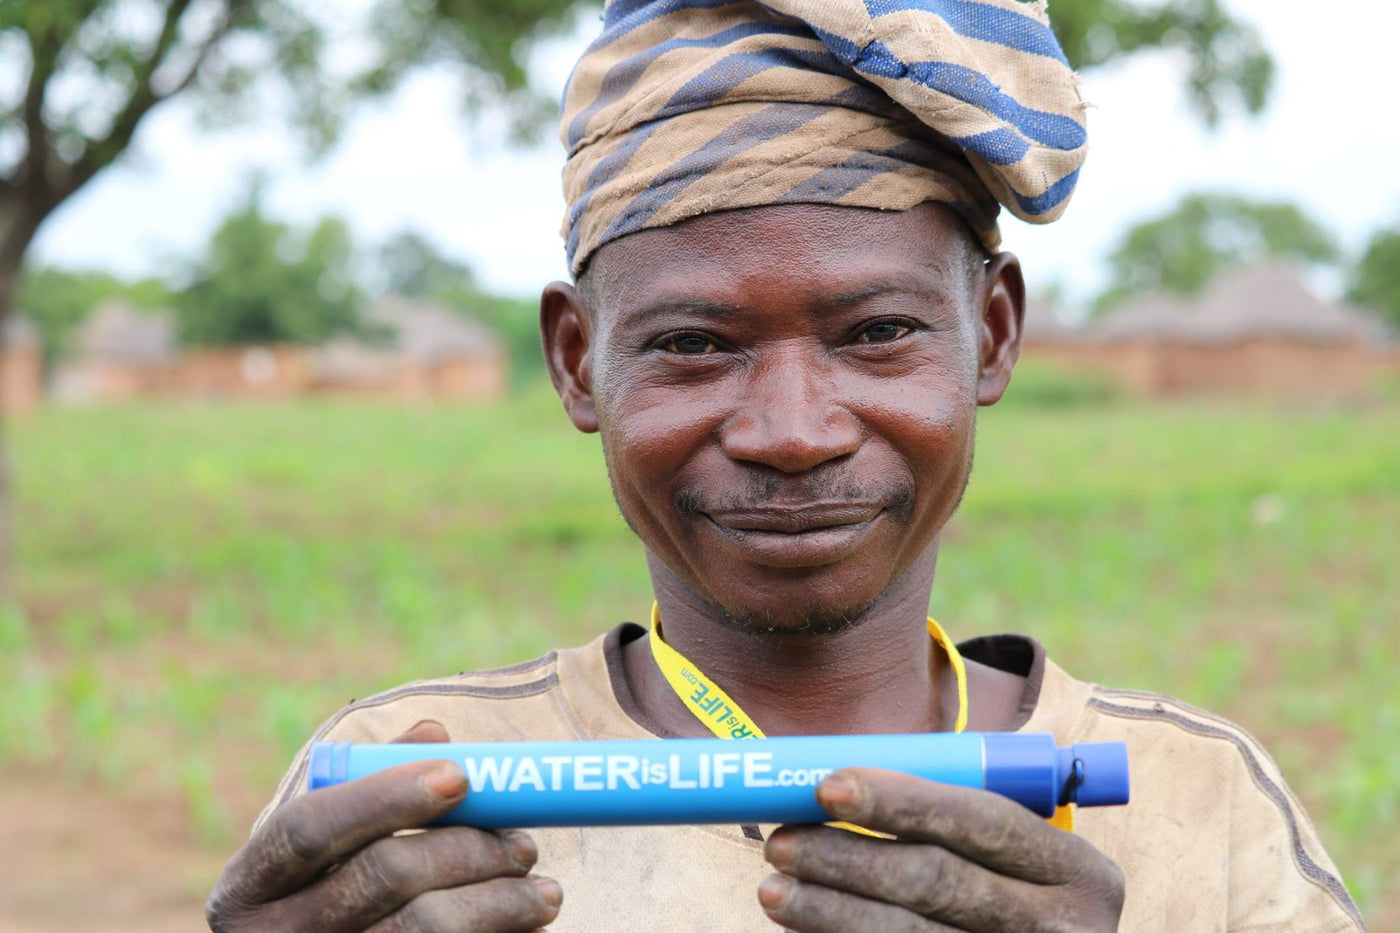 SHINE4WATER: OUR MISSION TO FIGHT THE CLEAN WATER CRISIS